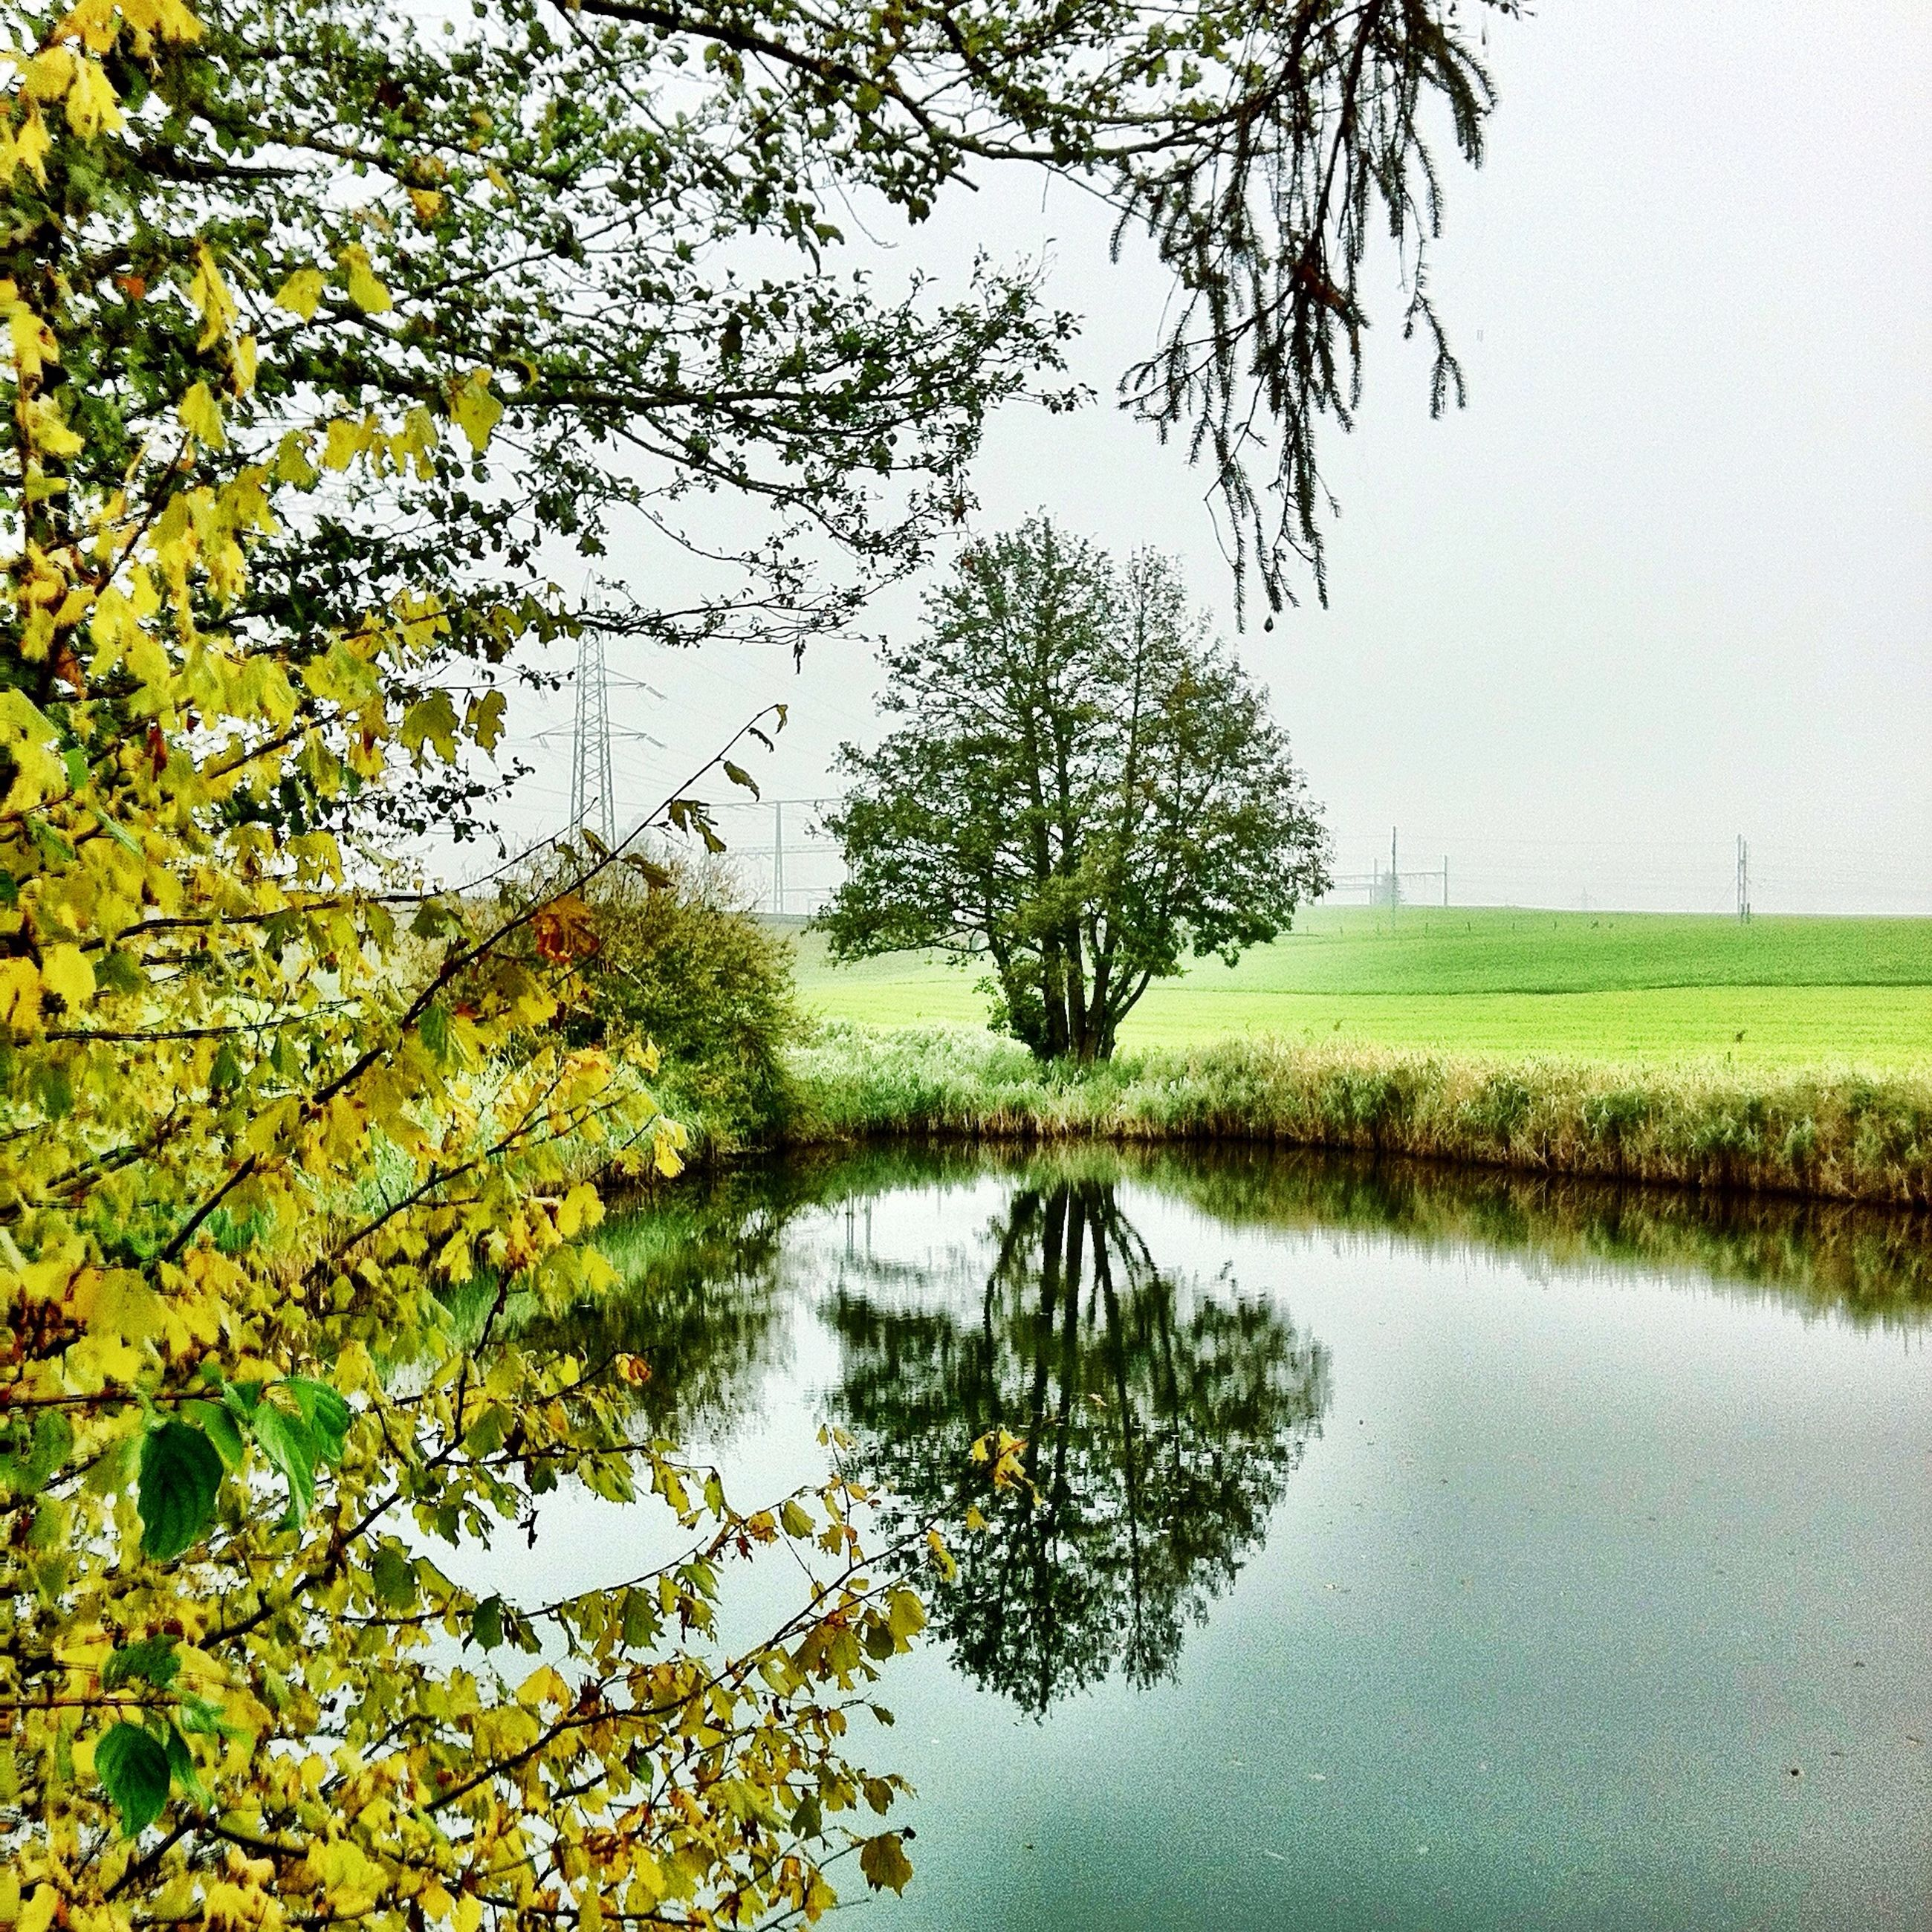 tree, water, tranquility, reflection, tranquil scene, lake, scenics, beauty in nature, nature, branch, growth, grass, waterfront, sky, river, green color, clear sky, idyllic, landscape, standing water